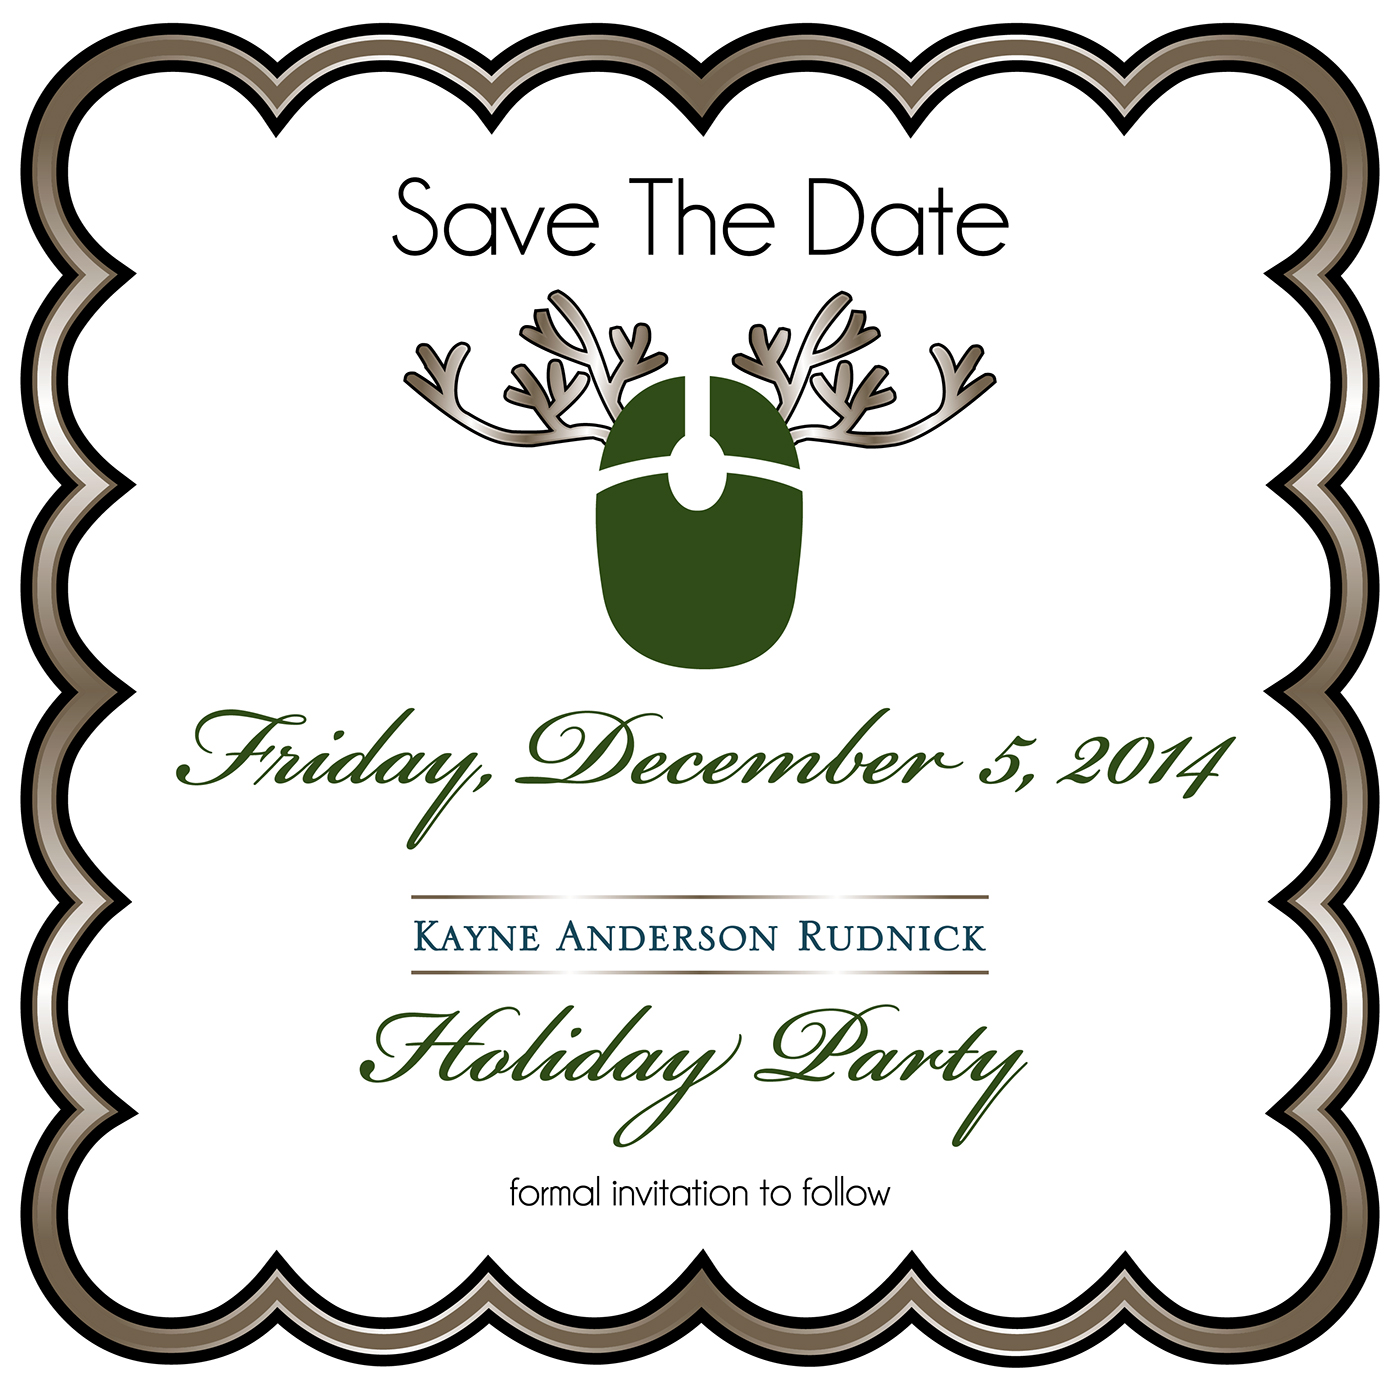 KAR Holiday Party Save the Date 2014 on Behance.